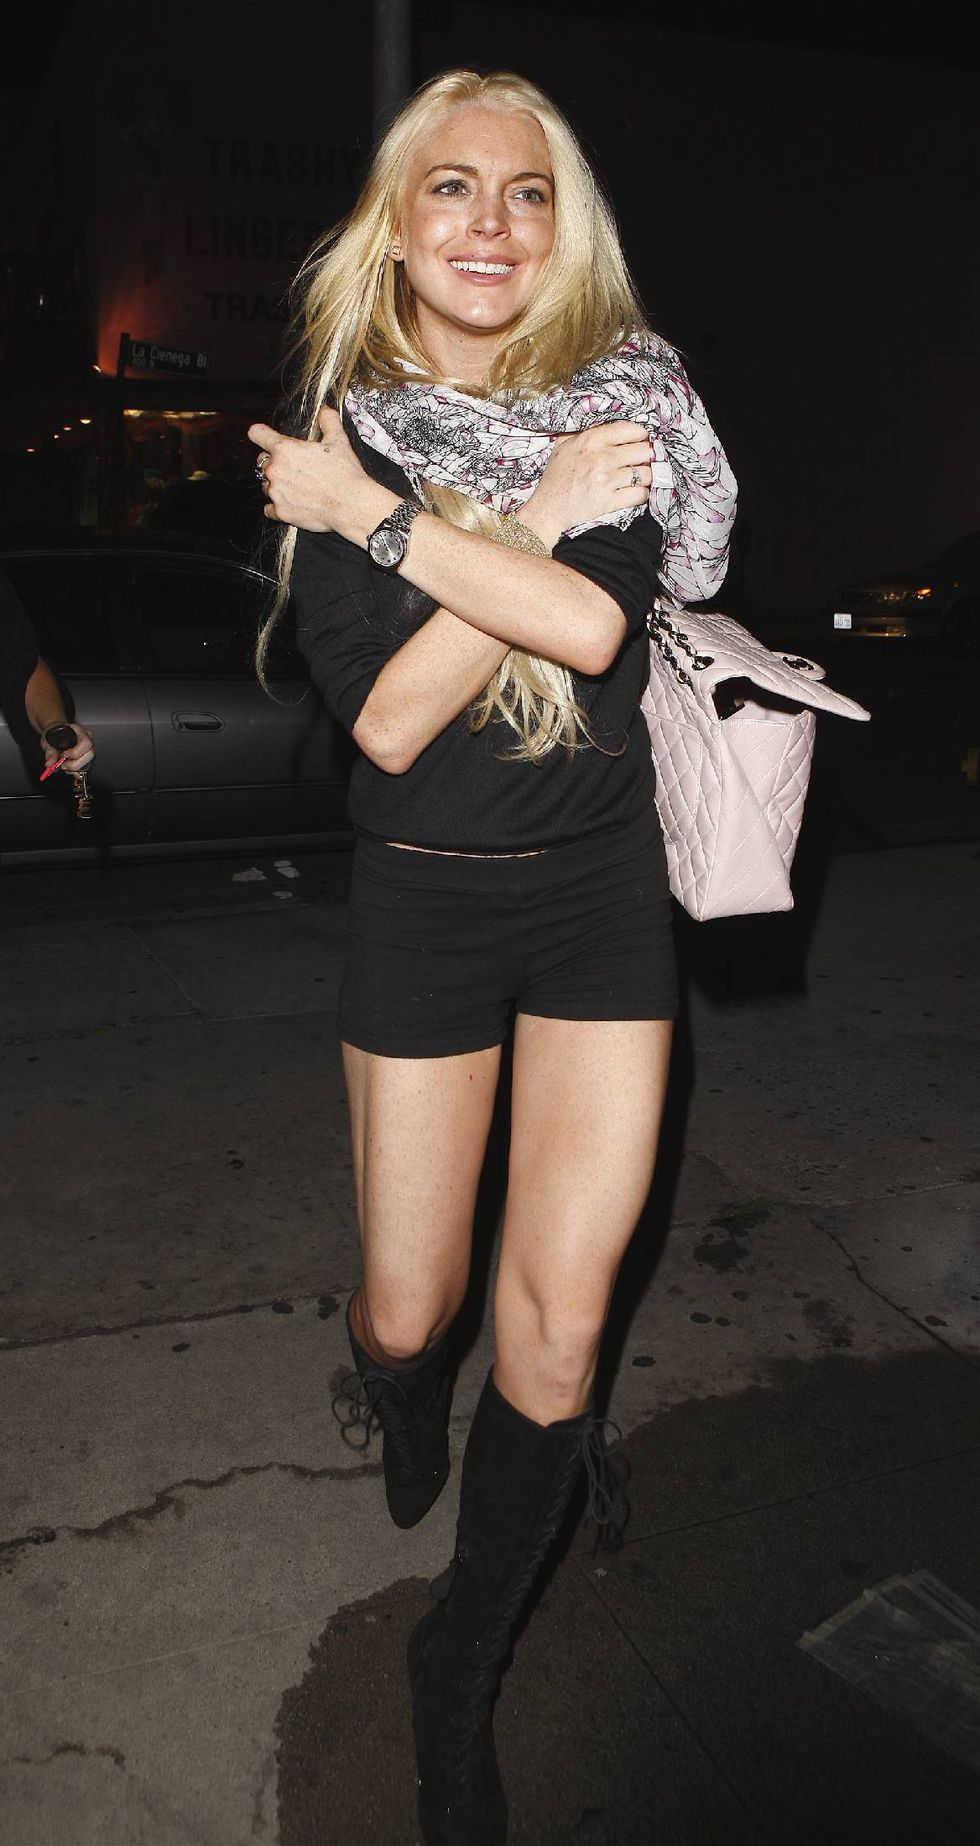 lindsay-lohan-leggy-candids-at-at-largo-in-west-holywood-01